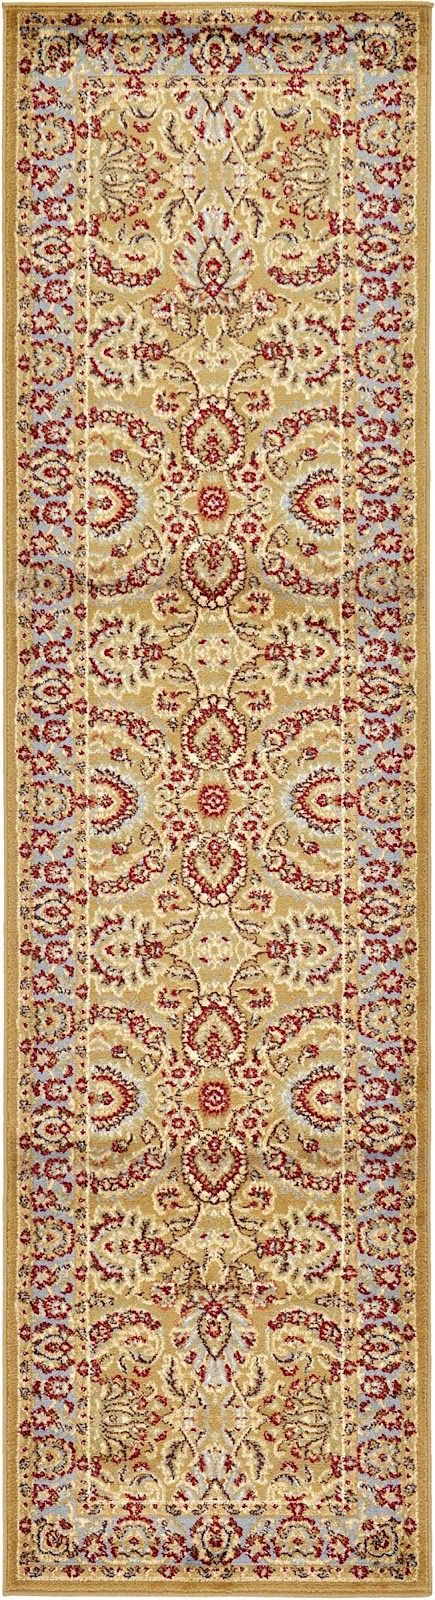 odyssey traditional area rug collection